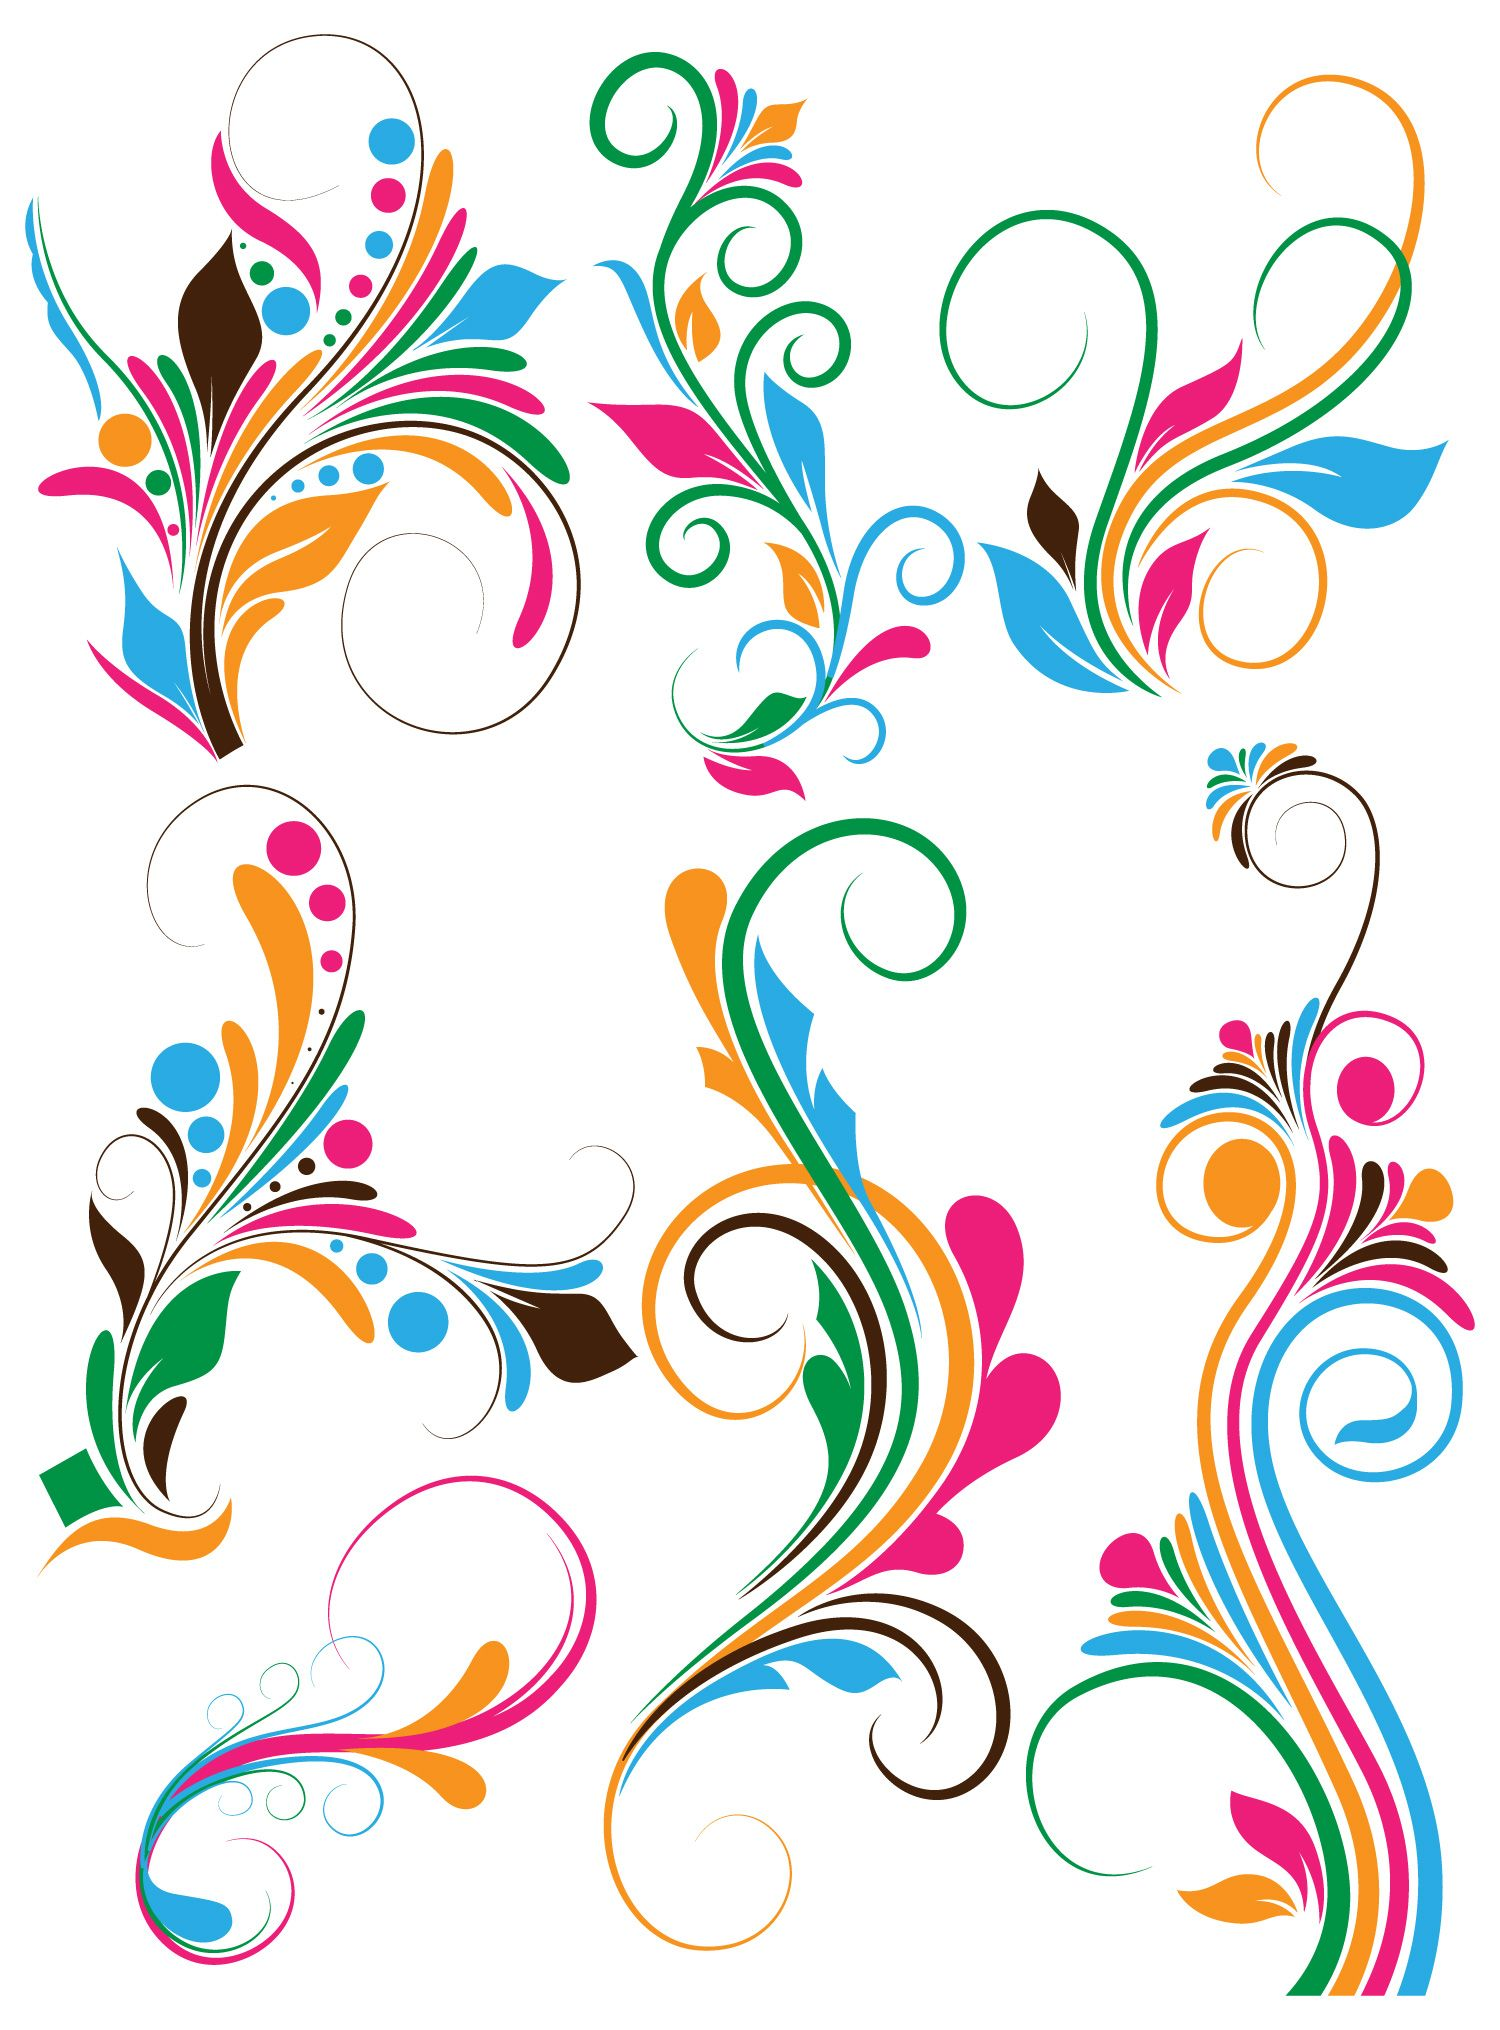 flower swirl clip art free photoshop flourish swirls vectors rh pinterest com